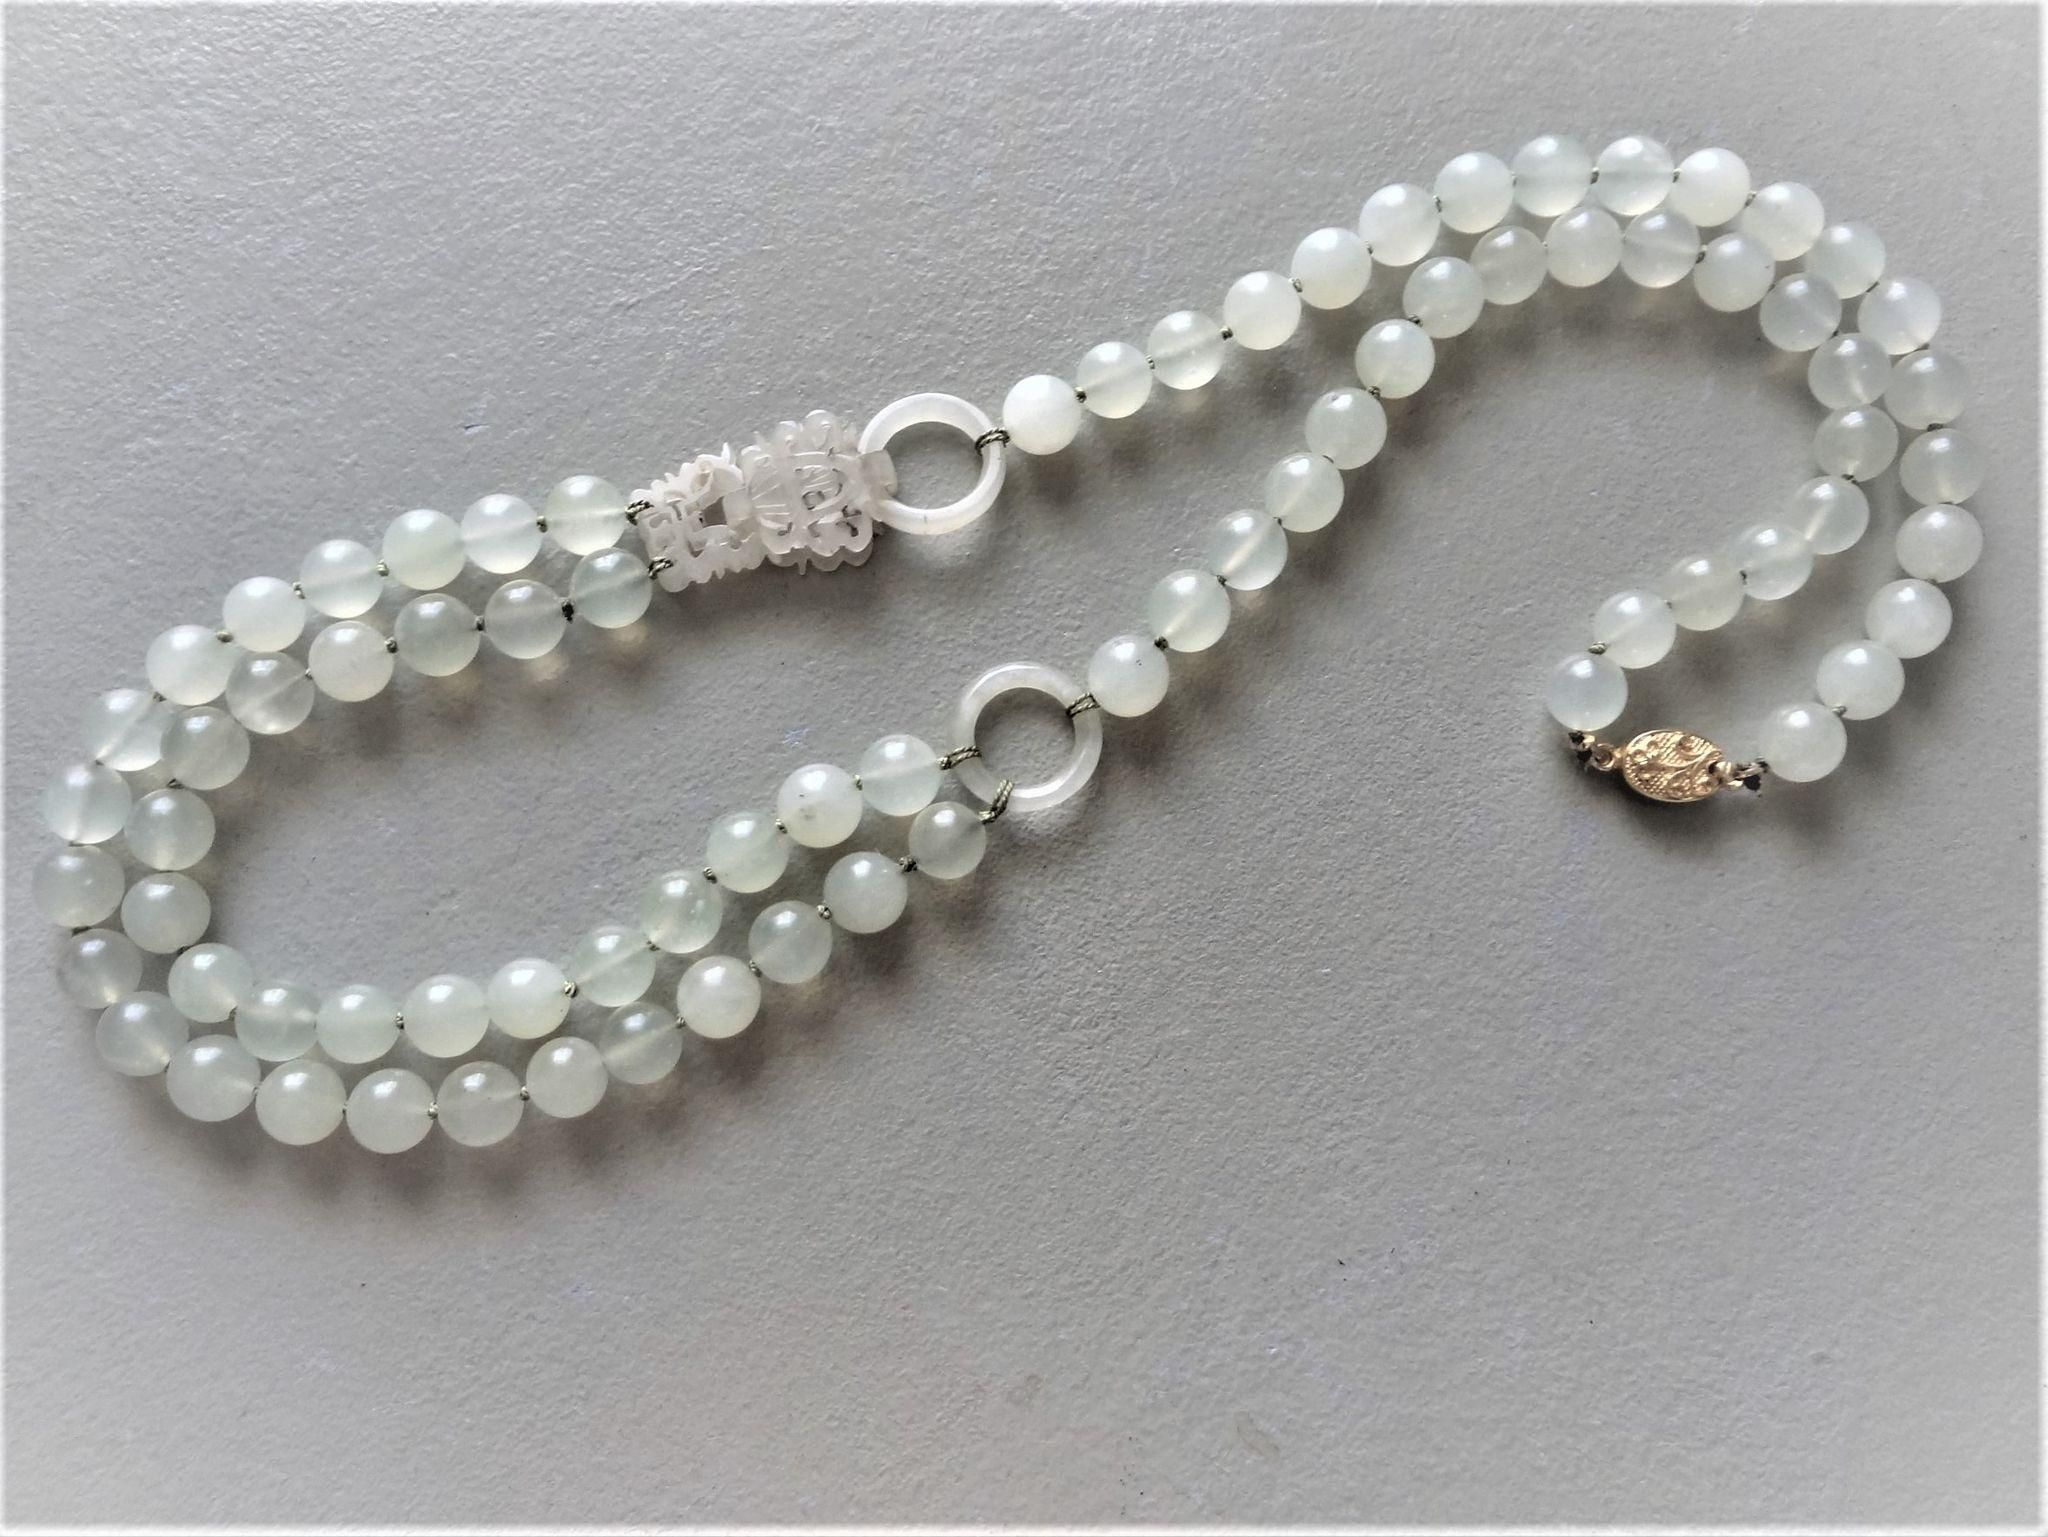 Chinese Exquisite White crystal Handmade beads Necklace